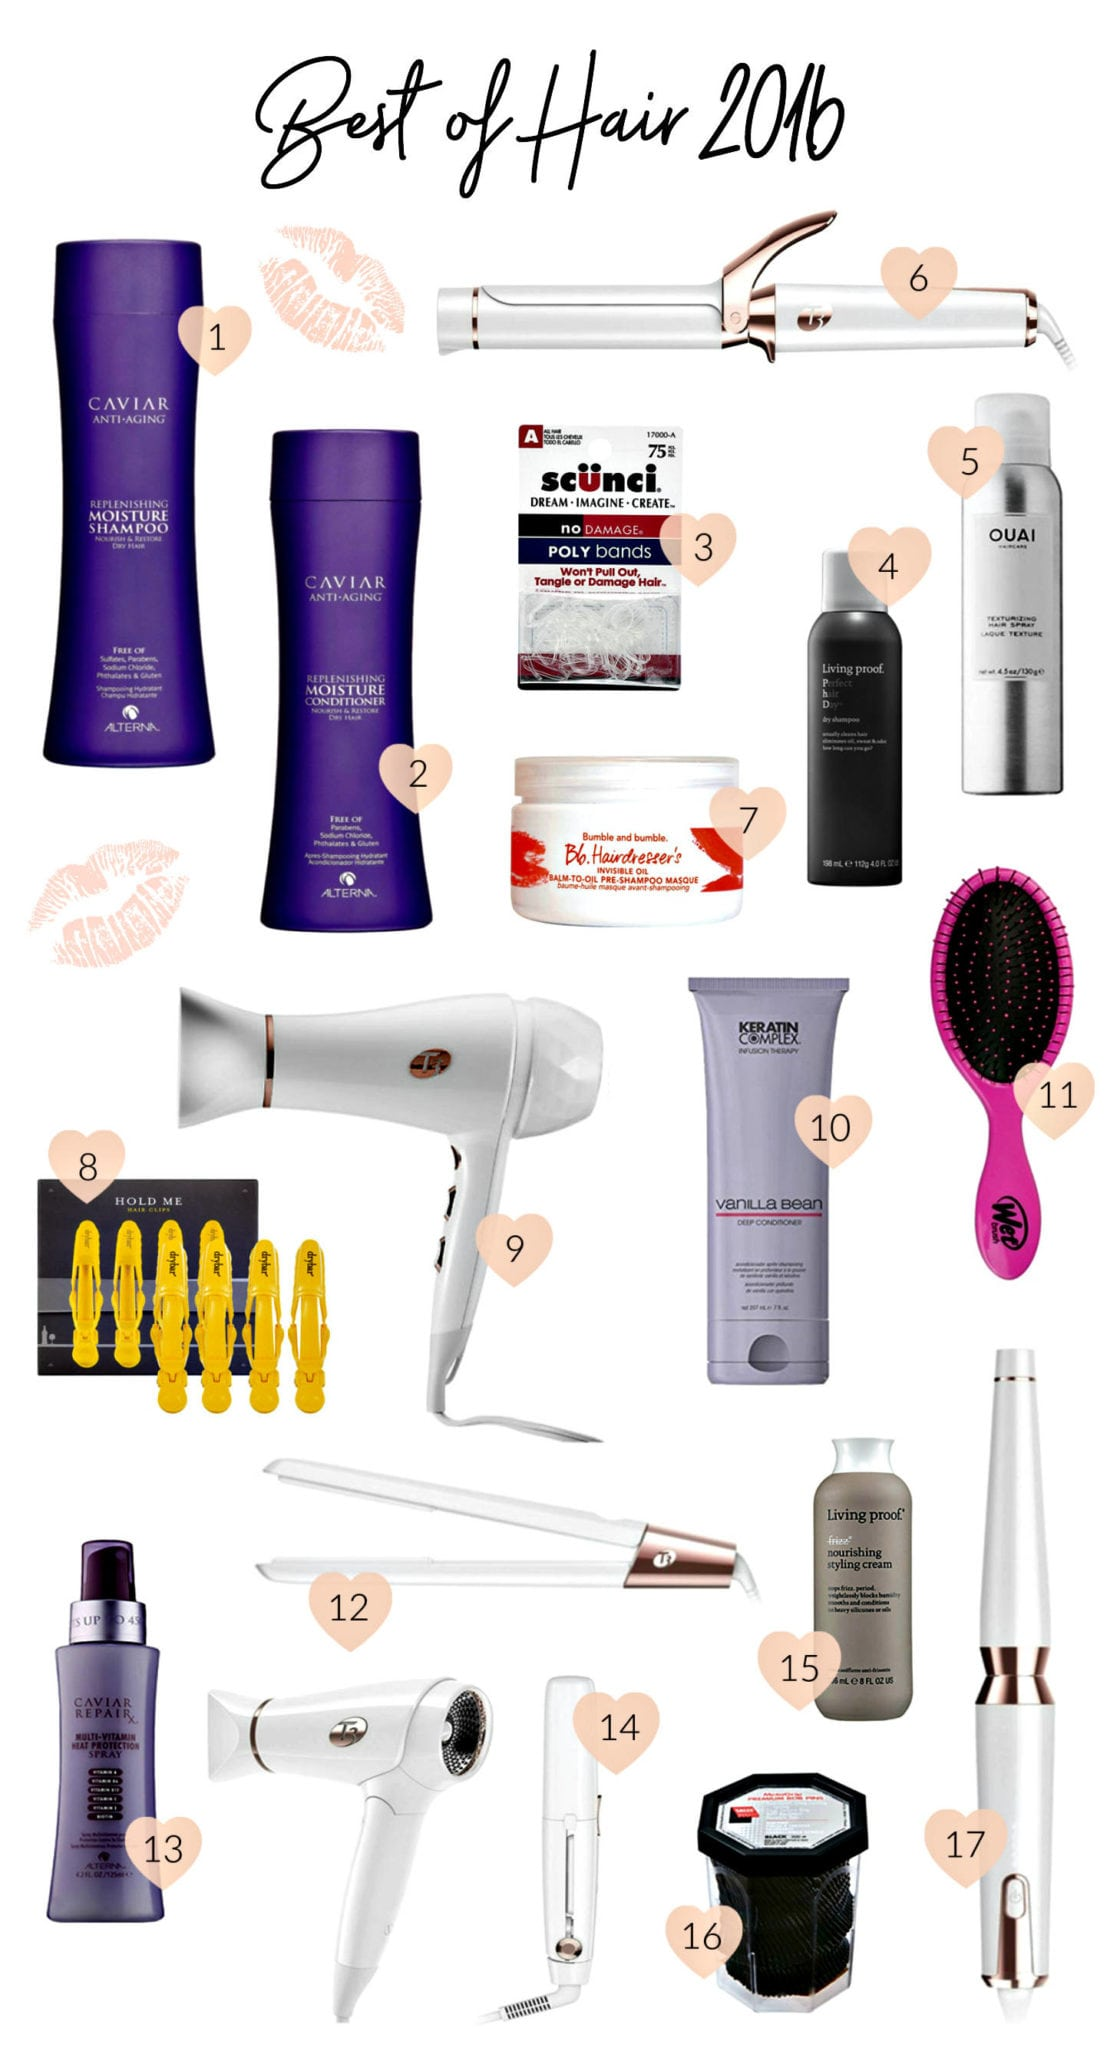 Beauty blogger Mash Elle shares her Ride or Die Best of Hair 2016 including the best T3 hairdryer, curling wand, curling iron, Caviar shampoo and conditioner, Ouai hairspray, Keratin Complex Vanilla Bean leave in conditioner, Dry Bar hair clips, Living Proof dry shampoo, styling cream, bumble and bumble hair mask, scunci elastics and more! - The Best Hair Products featured by popular Orlando beauty blogger, Mash Elle.